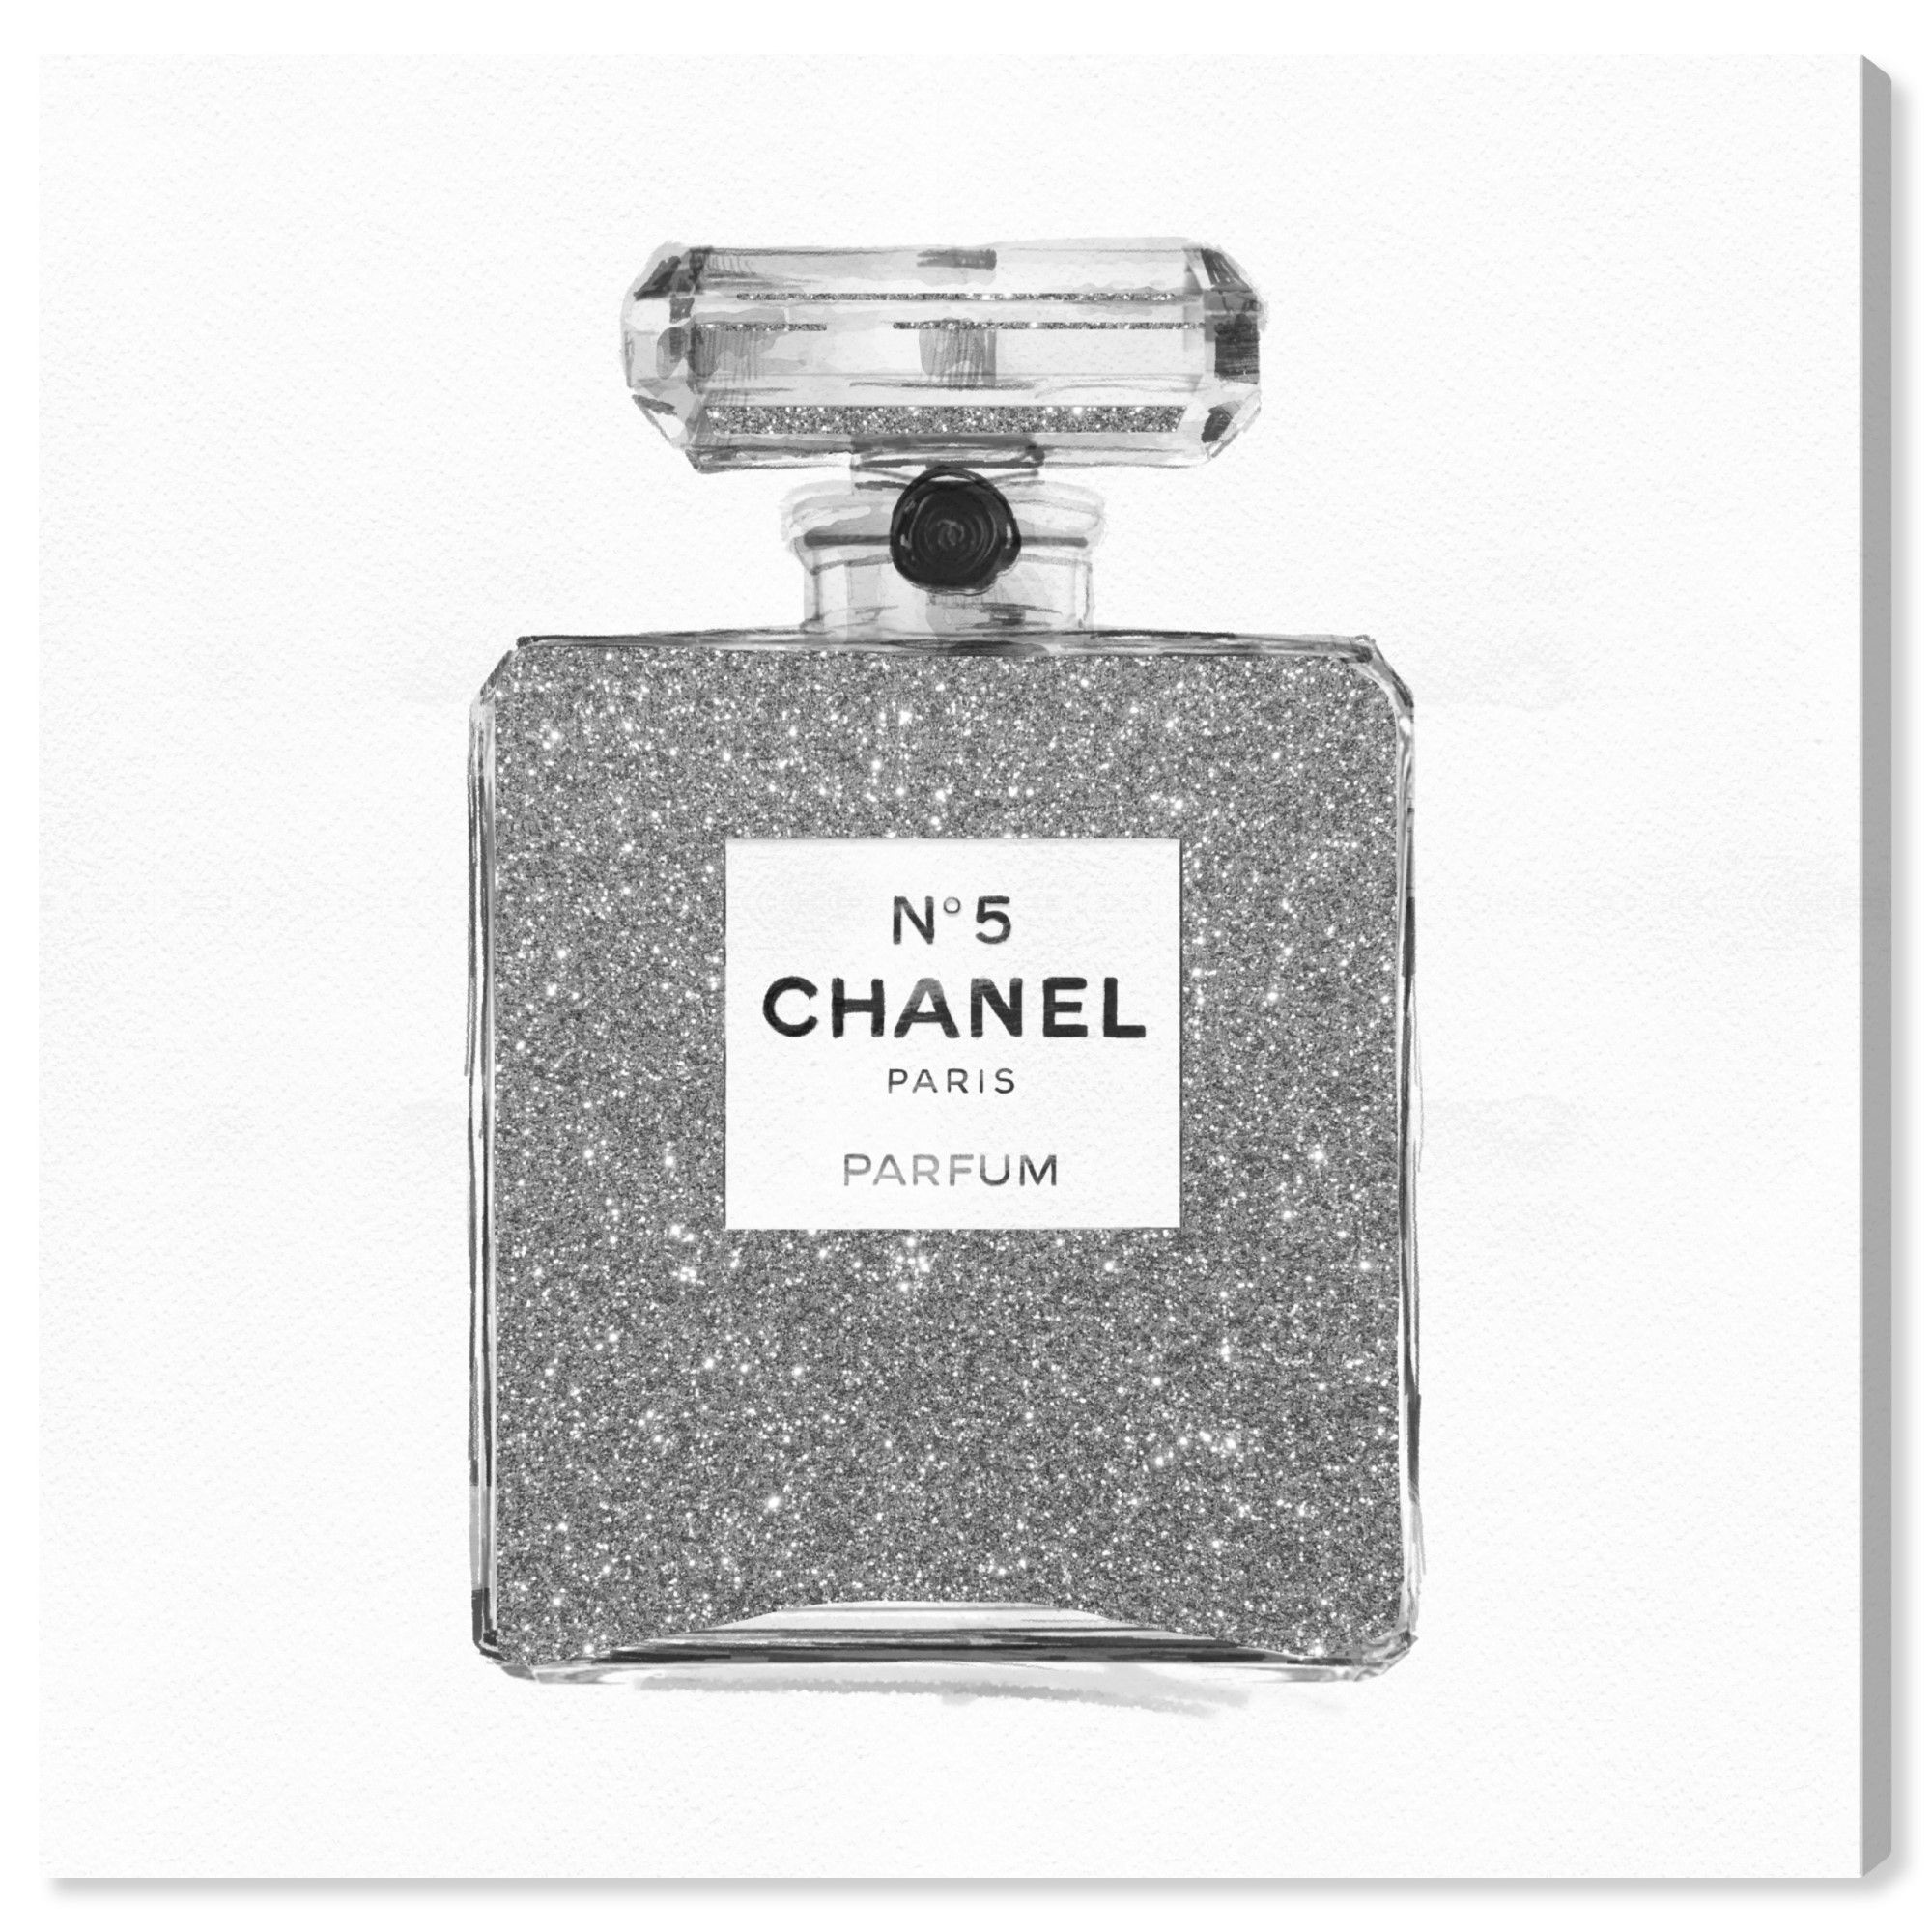 Runway Avenue Fashion And Glam Wall Art Canvas Prints Silver Classic Number 5 Perfumes Gray White Walmart Com Chanel Wall Art Glam Wall Art Fashion Wall Art